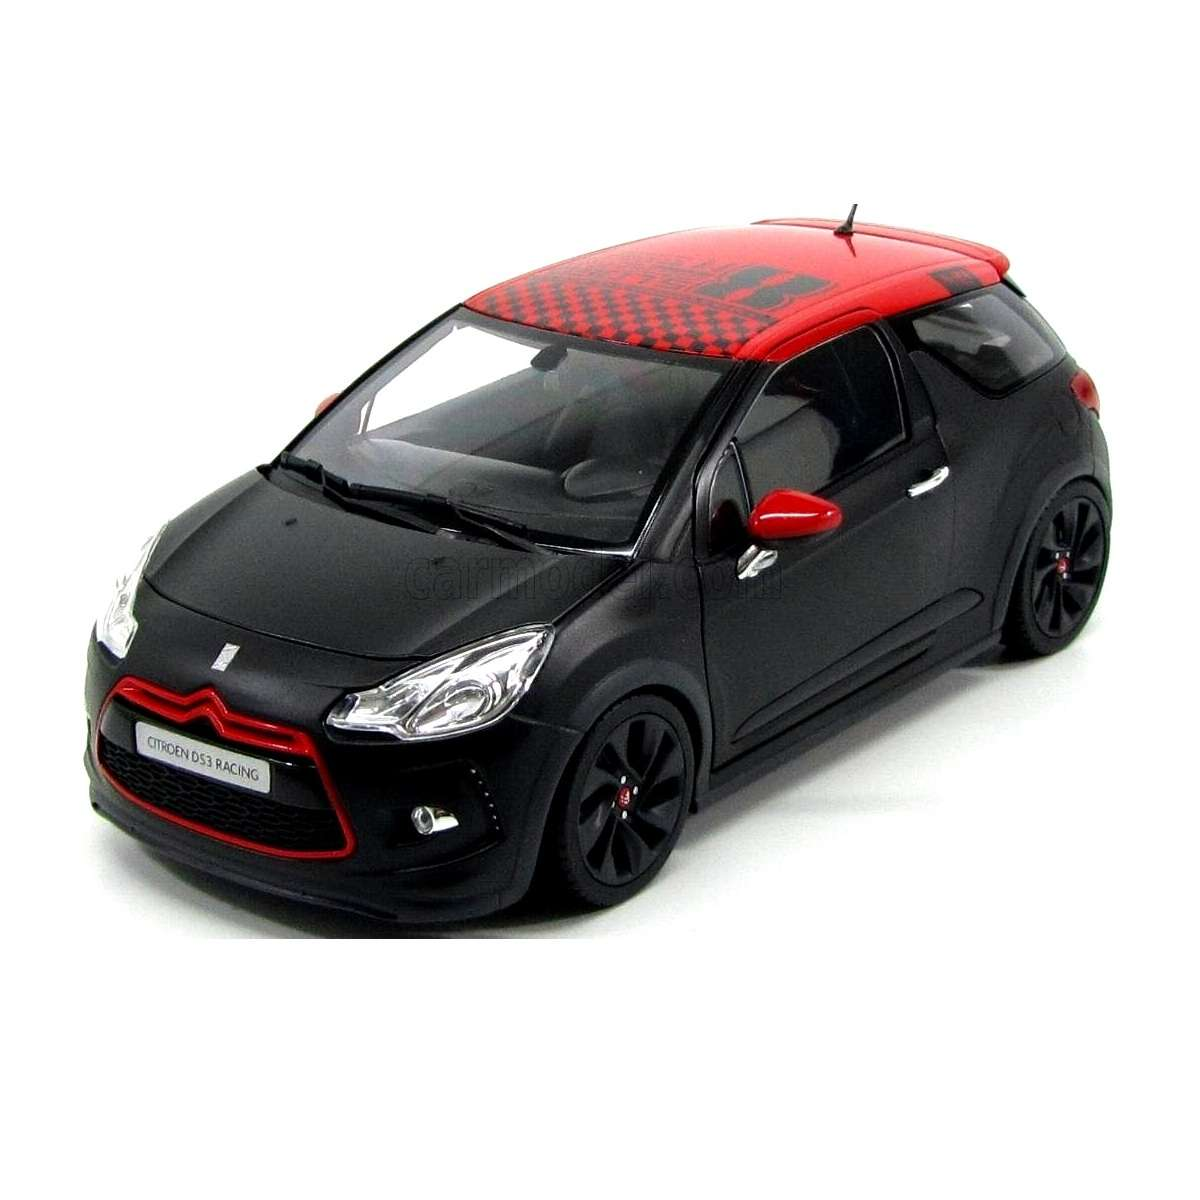 Diecast Car 1/18: Street Cars - Citroen DS3 Racing 2012 Photo